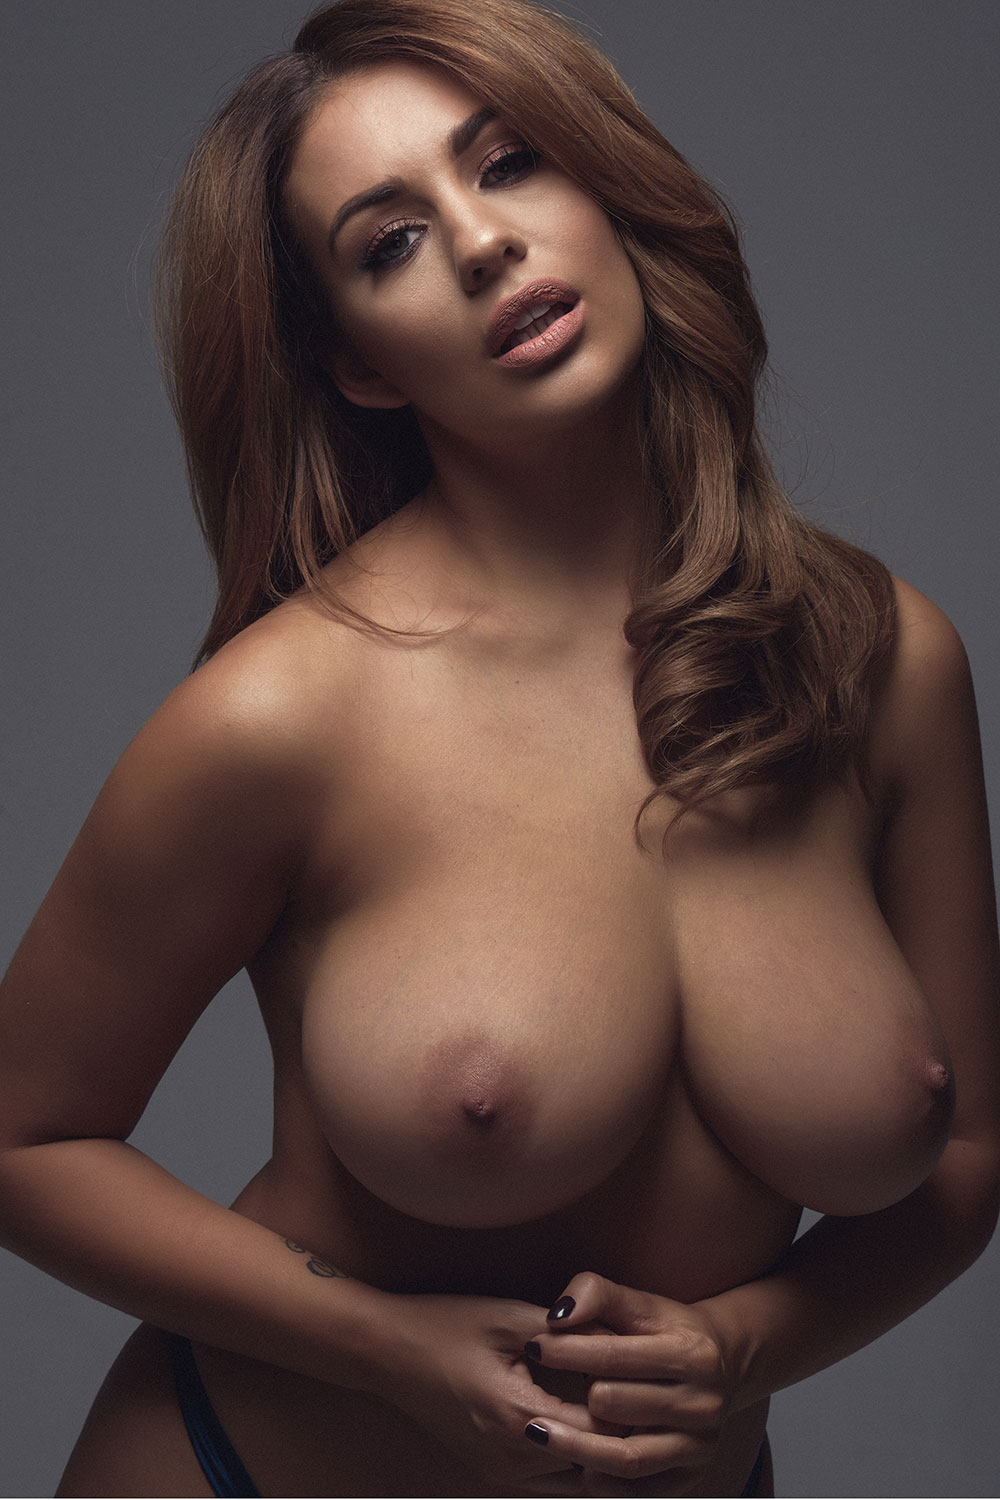 holly-peers-sexy-and-topless-5-1